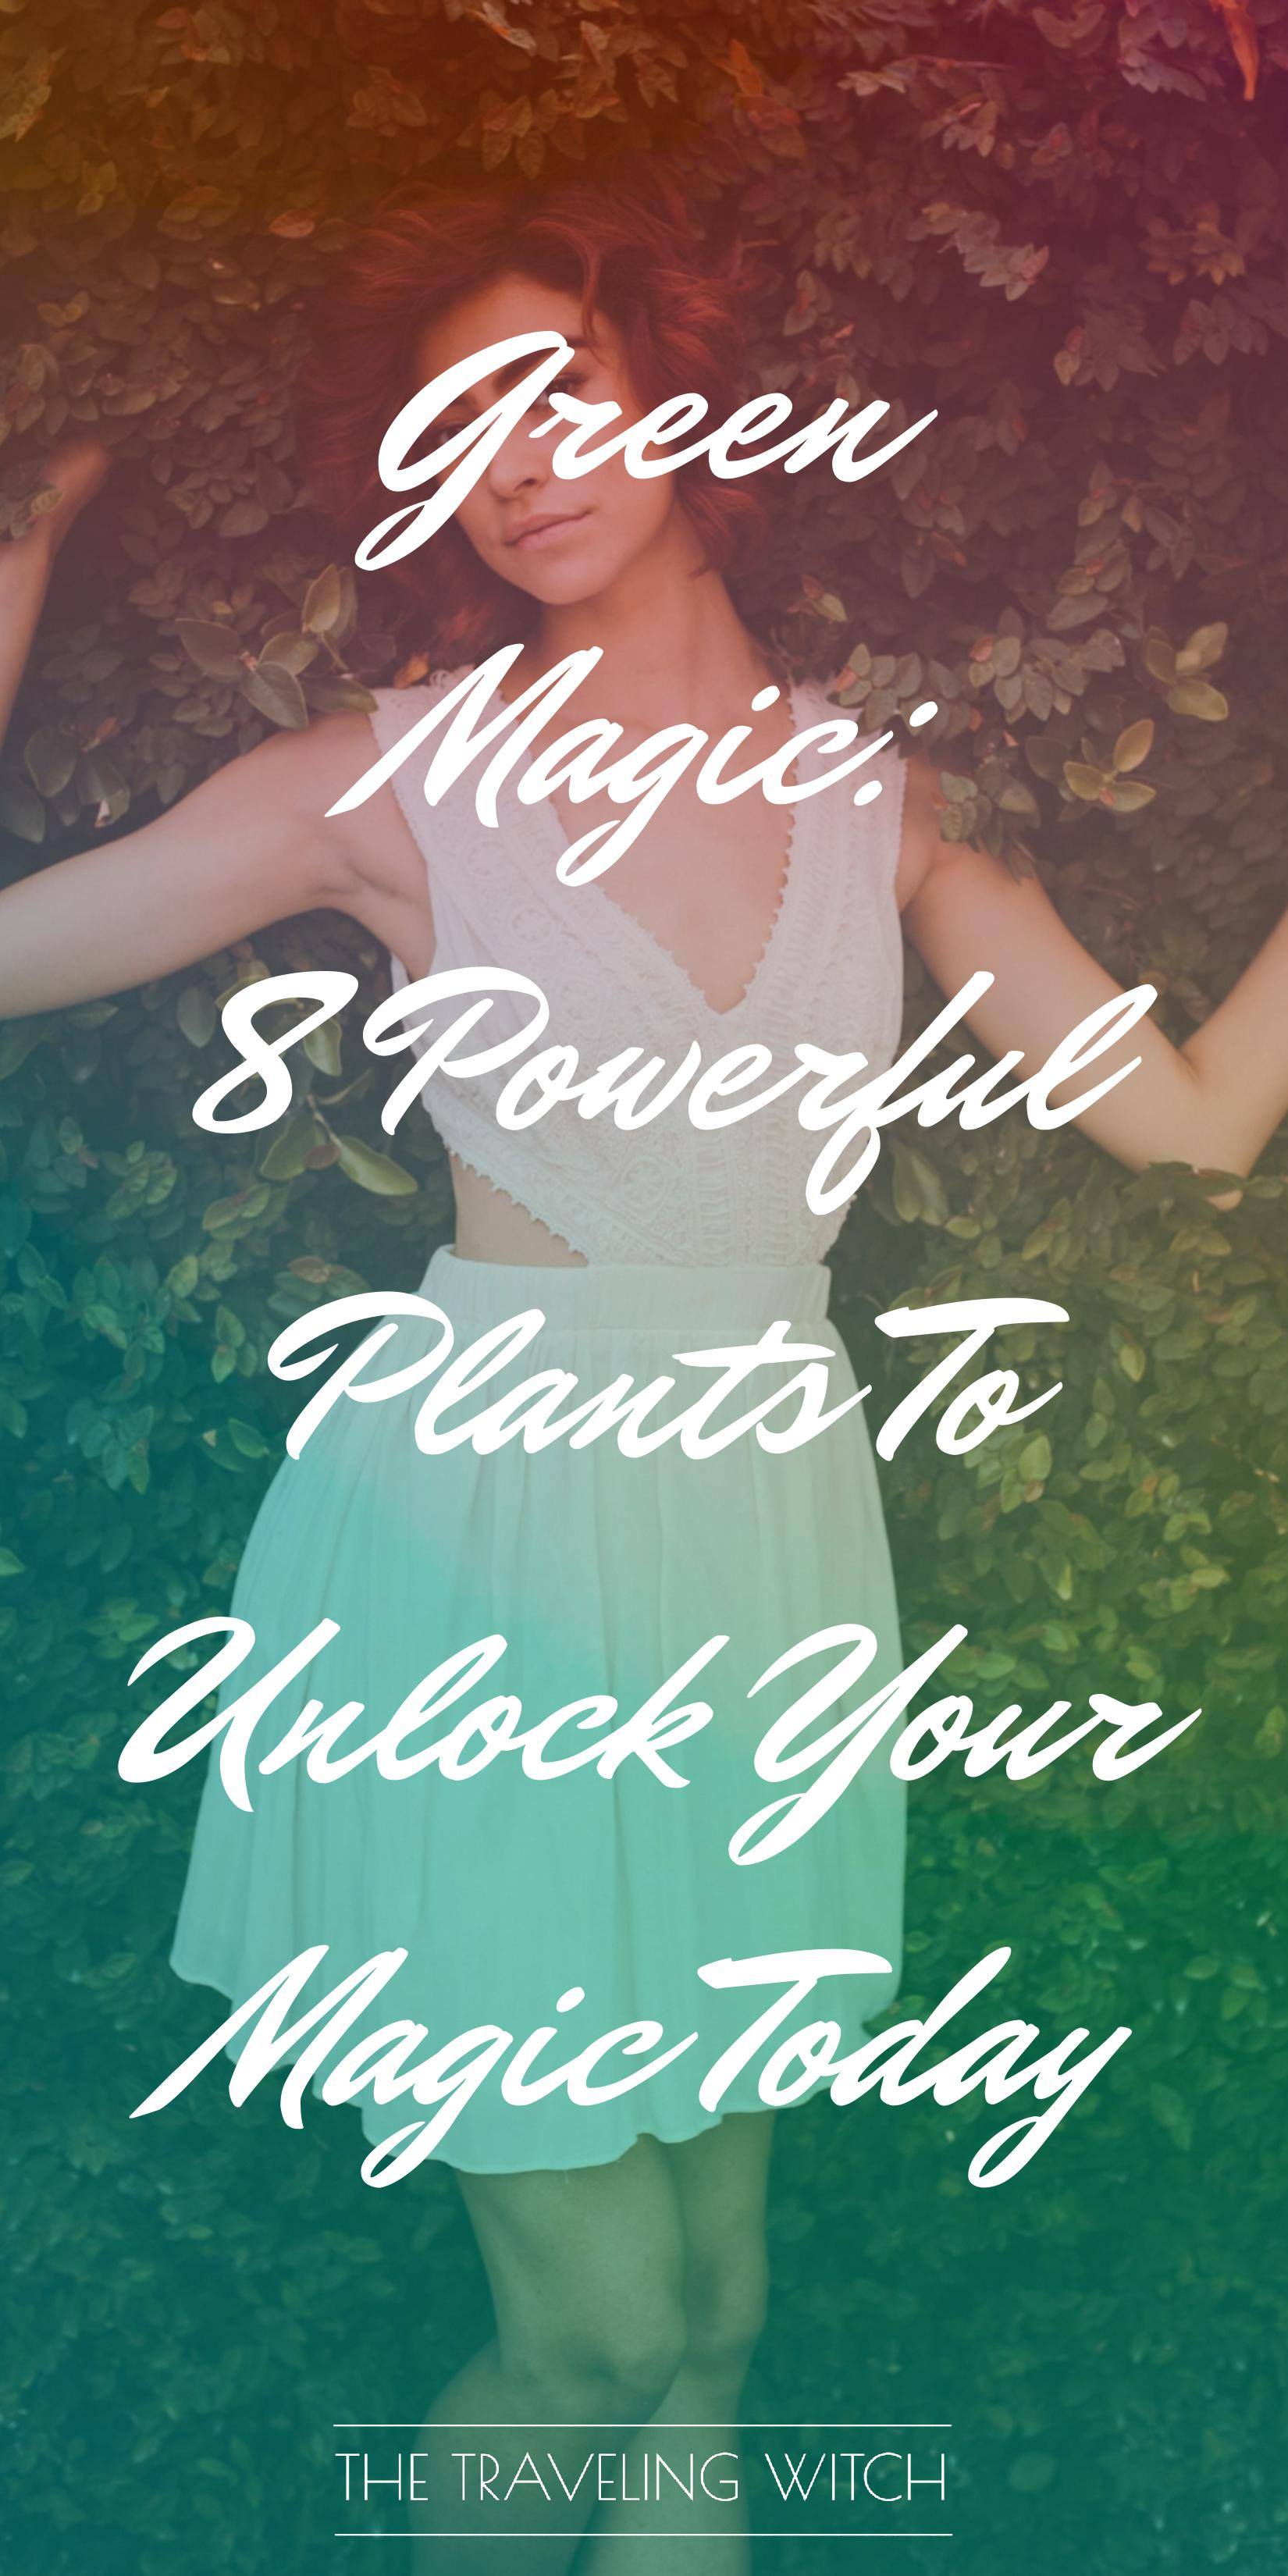 Green Magic: 8 Powerful Plants To Unlock Your Magic Today by The Traveling Witch #Witchcraft #Magic